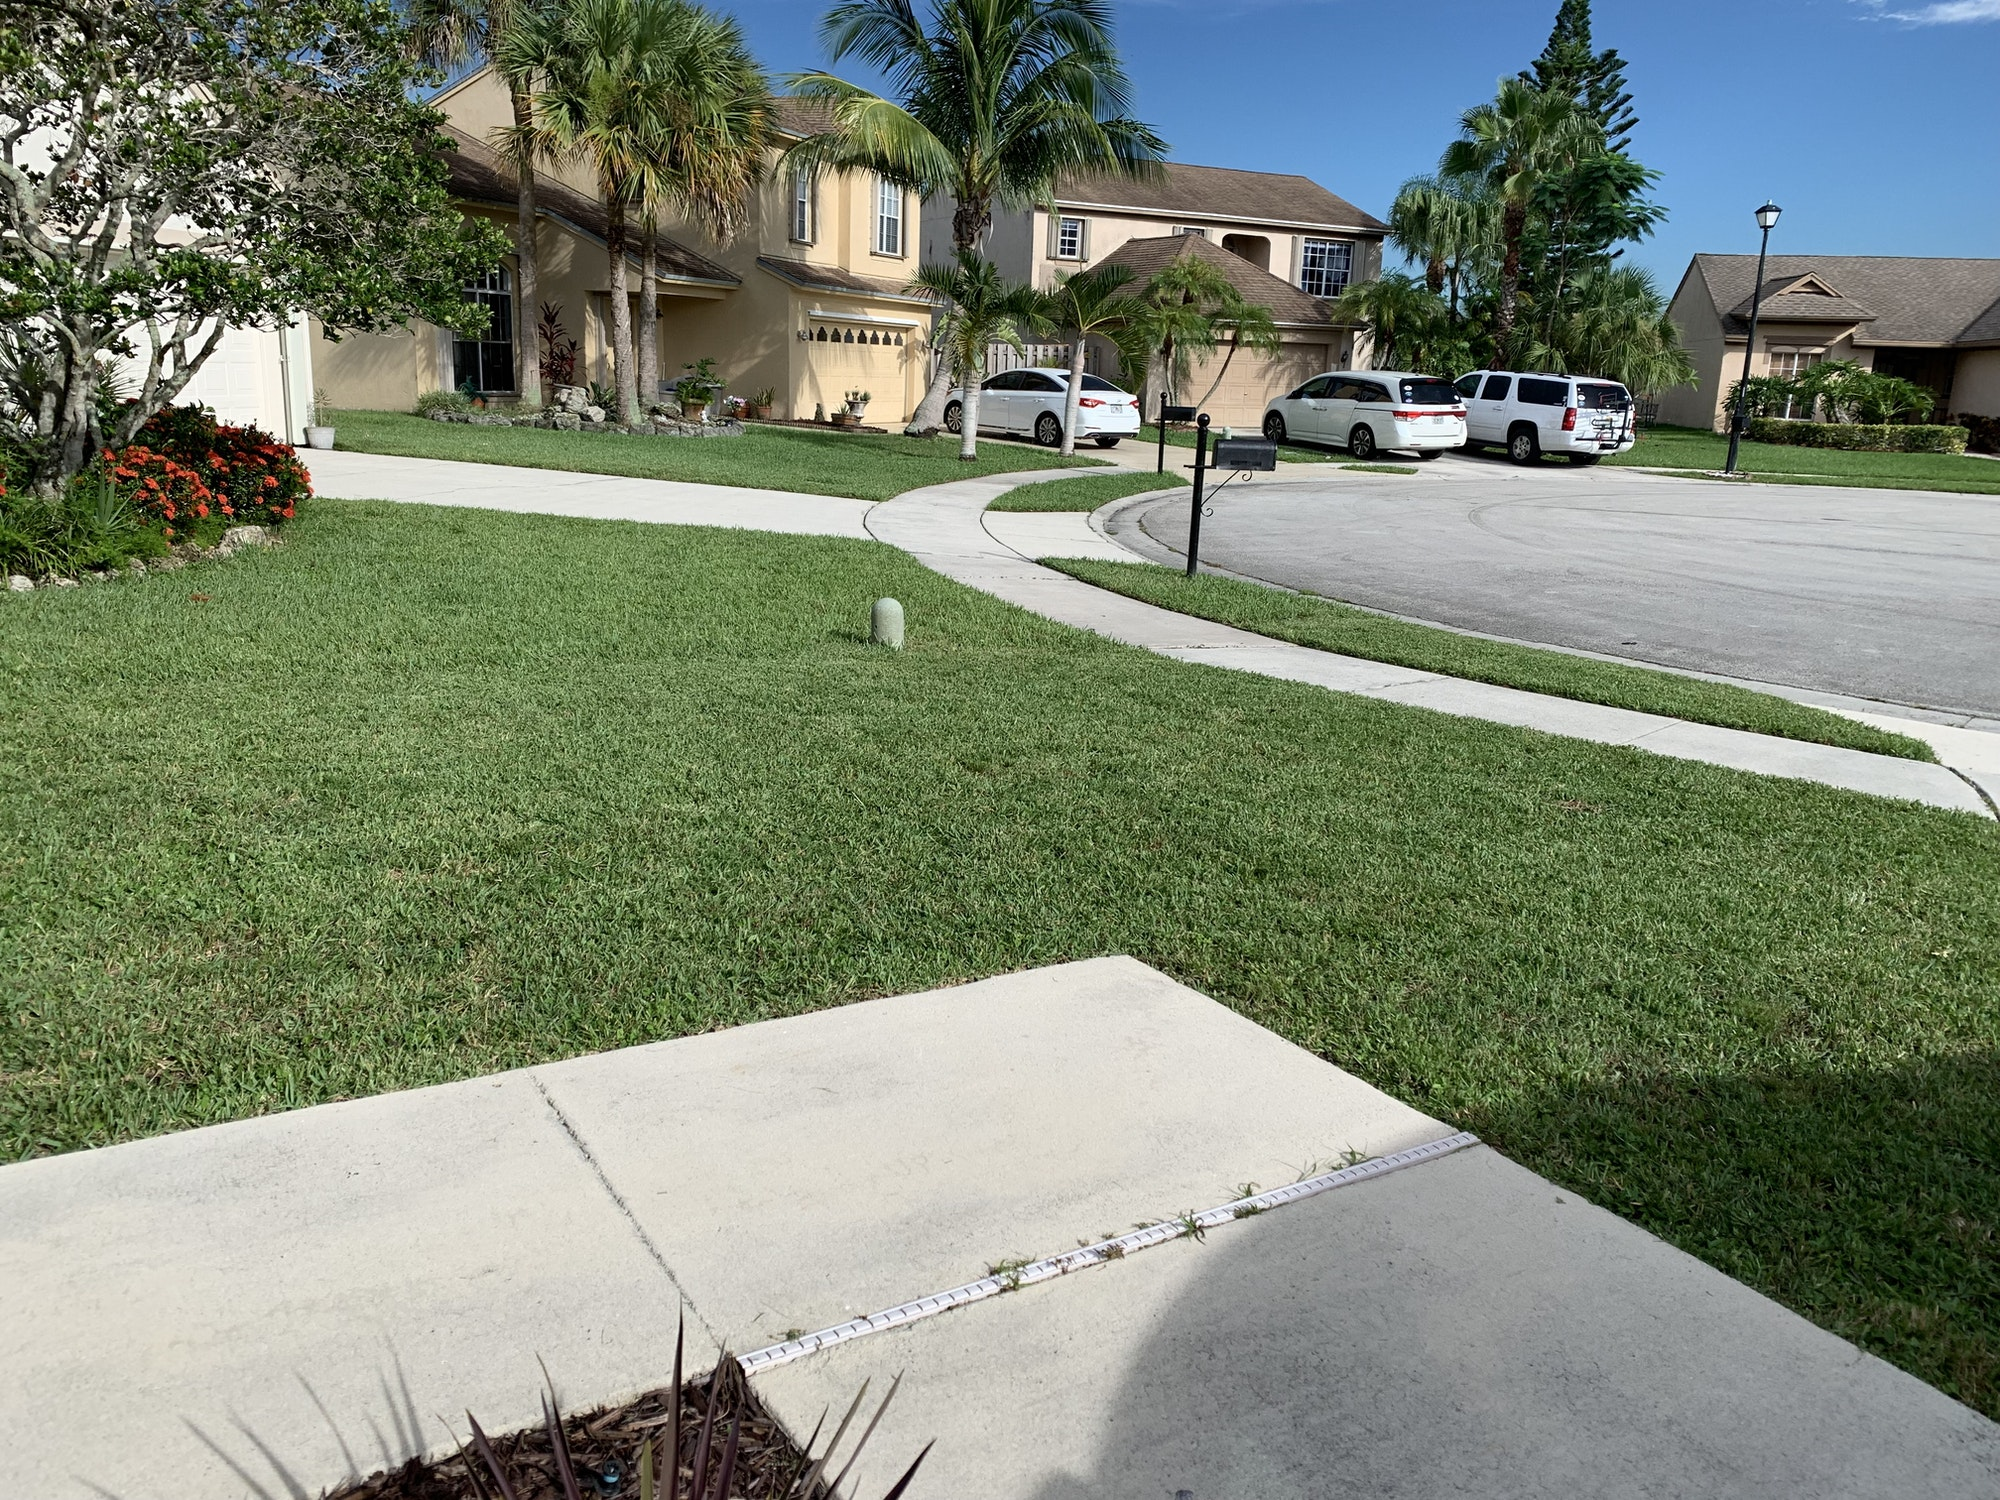 The Walkway On A Florida Home